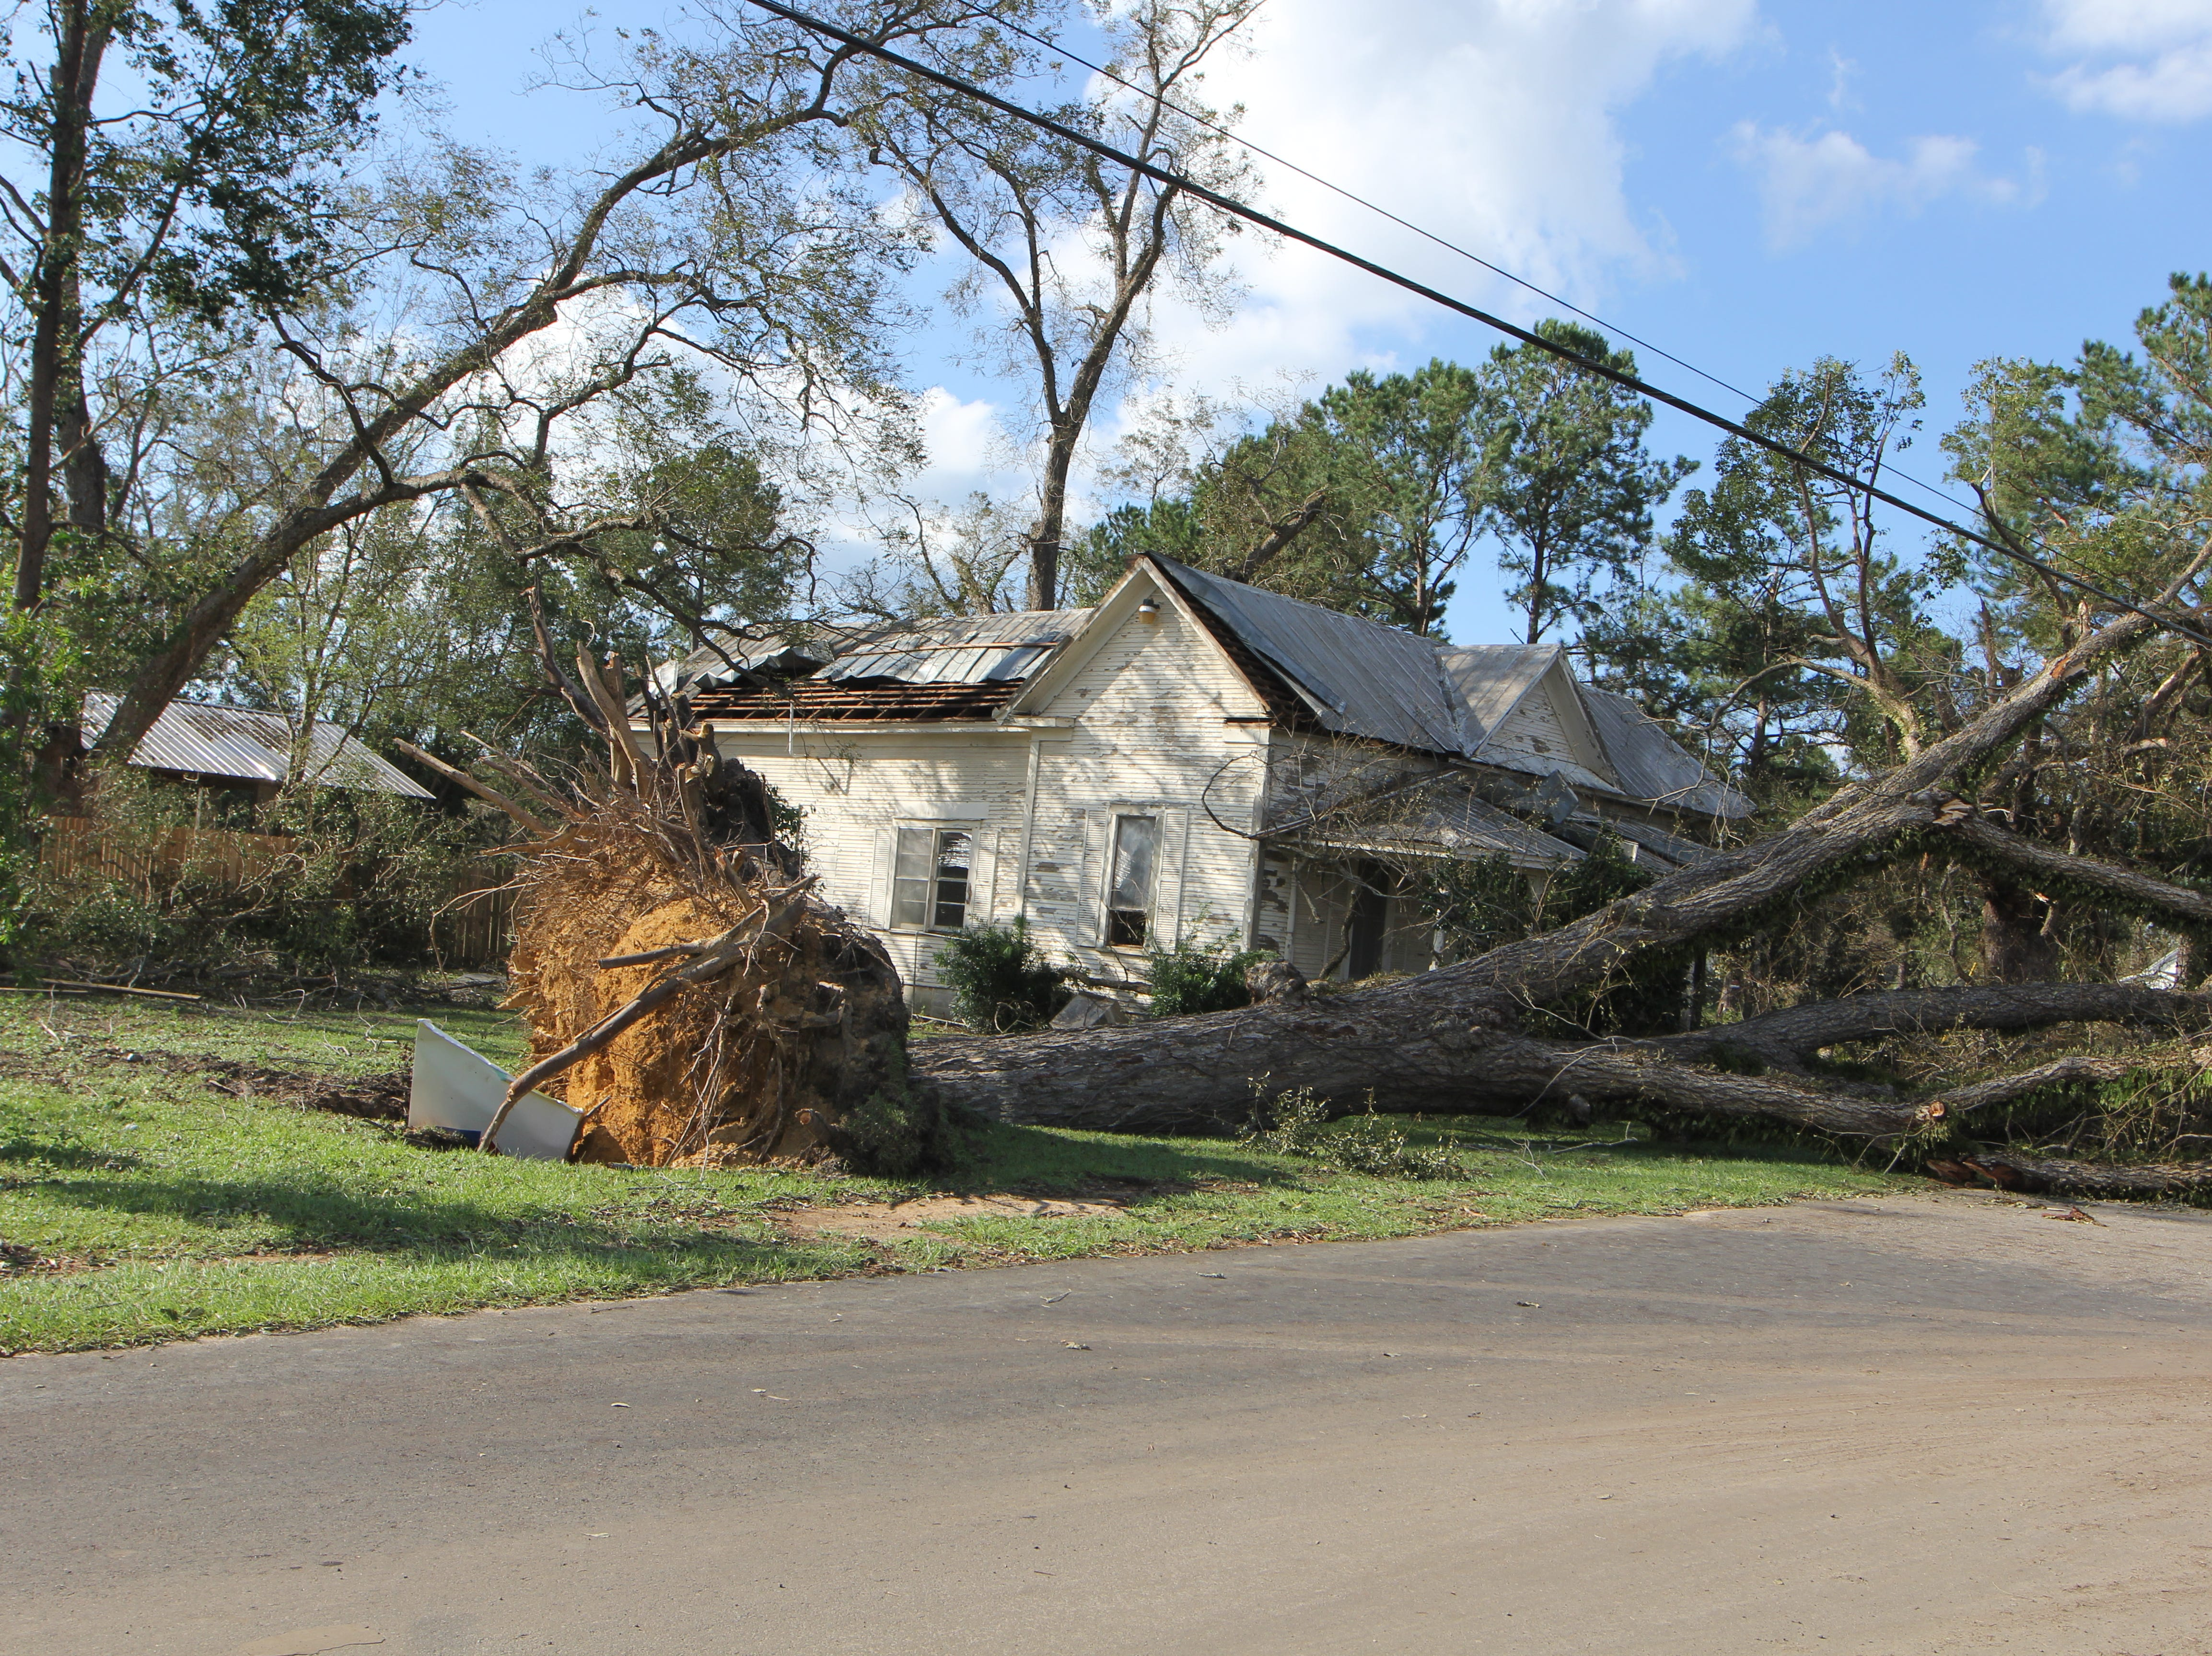 A large fallen oak in front of a home in Greensboro, Gadsden County, after Hurricane Michael.